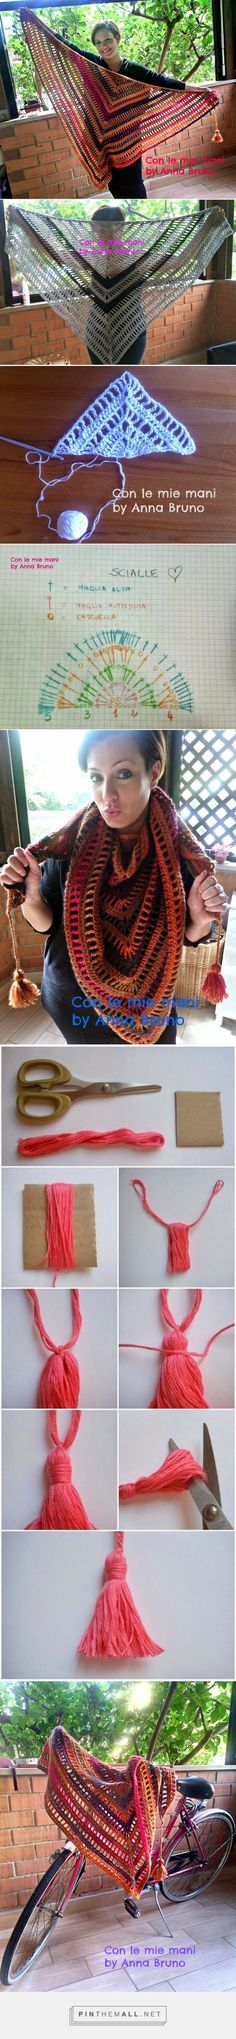 Con le mie mani by Anna Bruno: Tutorial scialle crochet - created via http://pinthemall.net